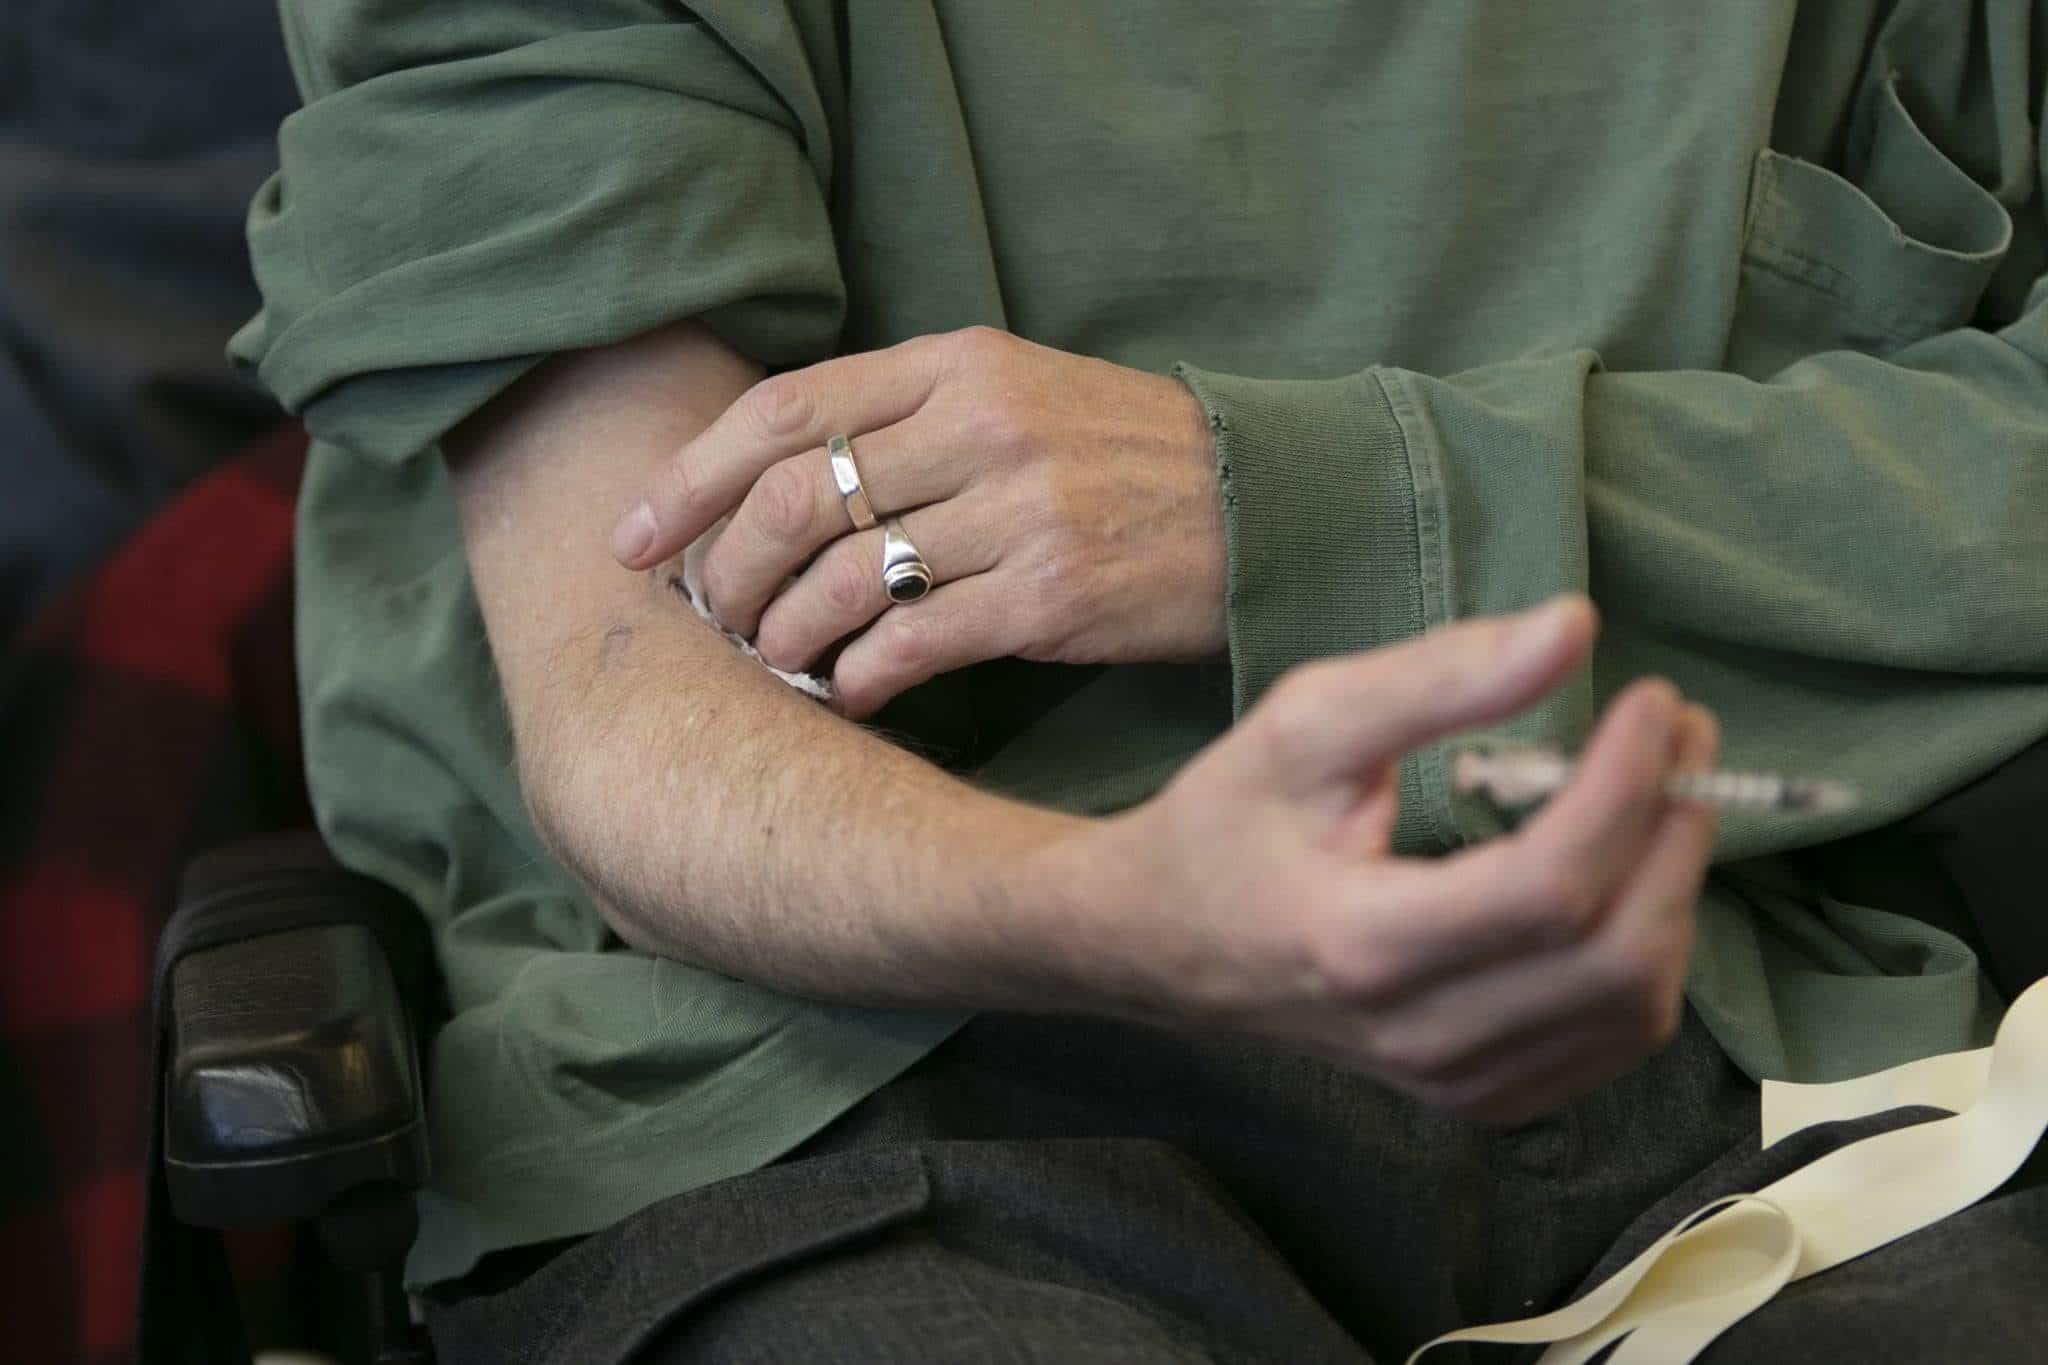 Hand pressing cotton pad on arm that is holding a syringe